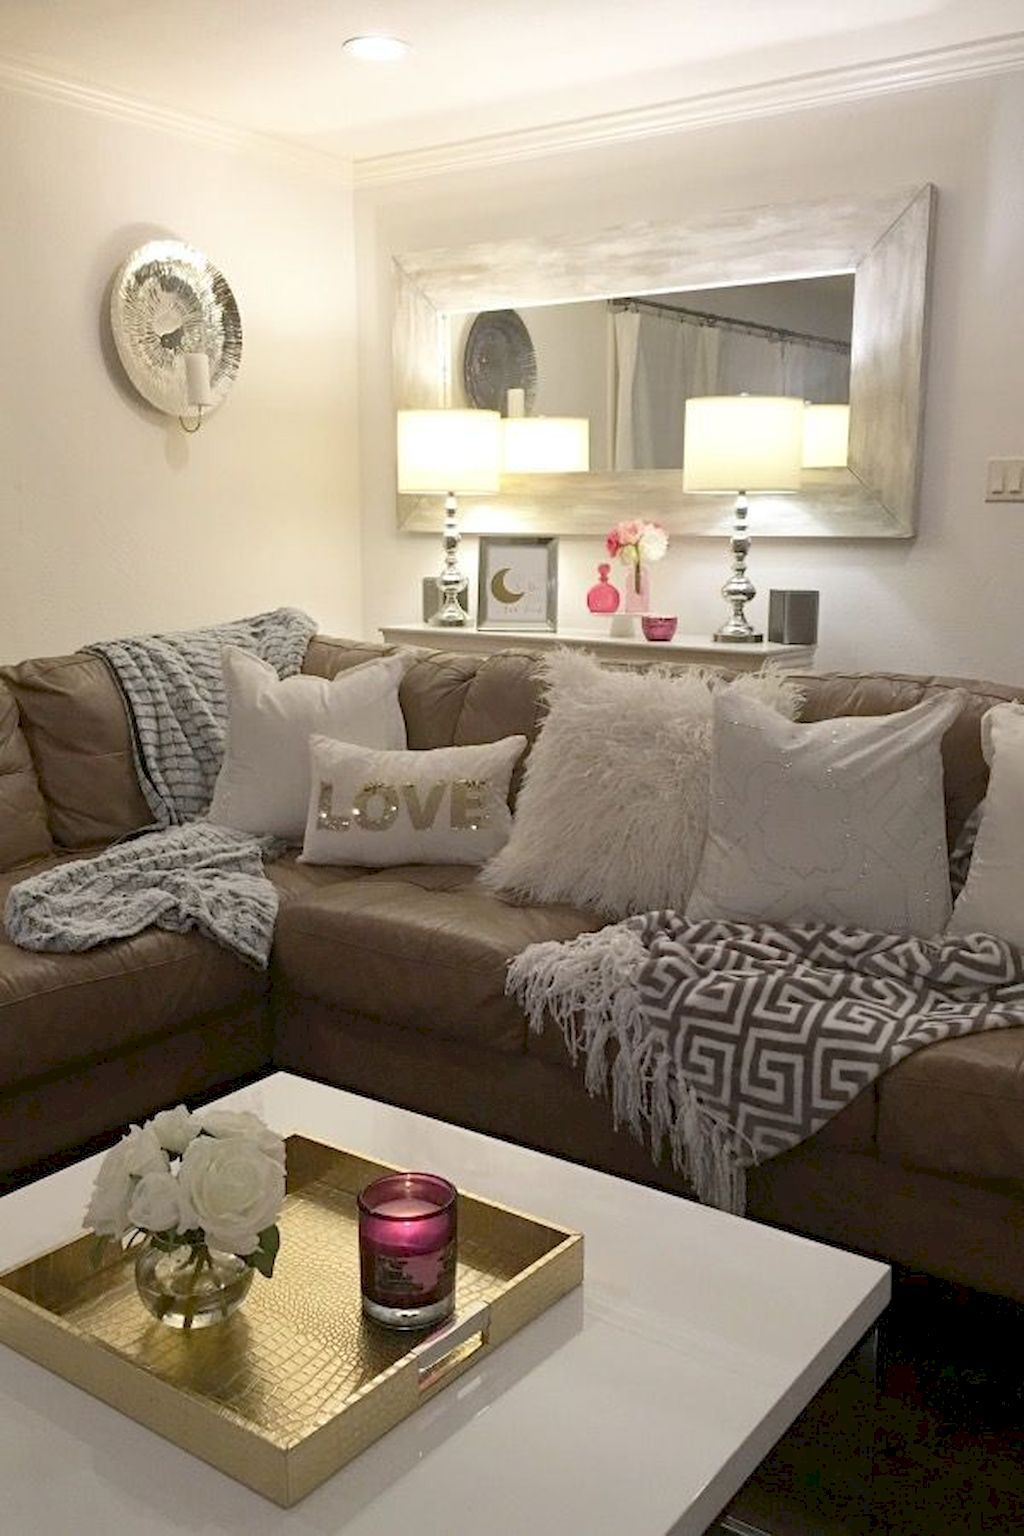 75 Clever College Apartment Decorating Ideas On A Budget College